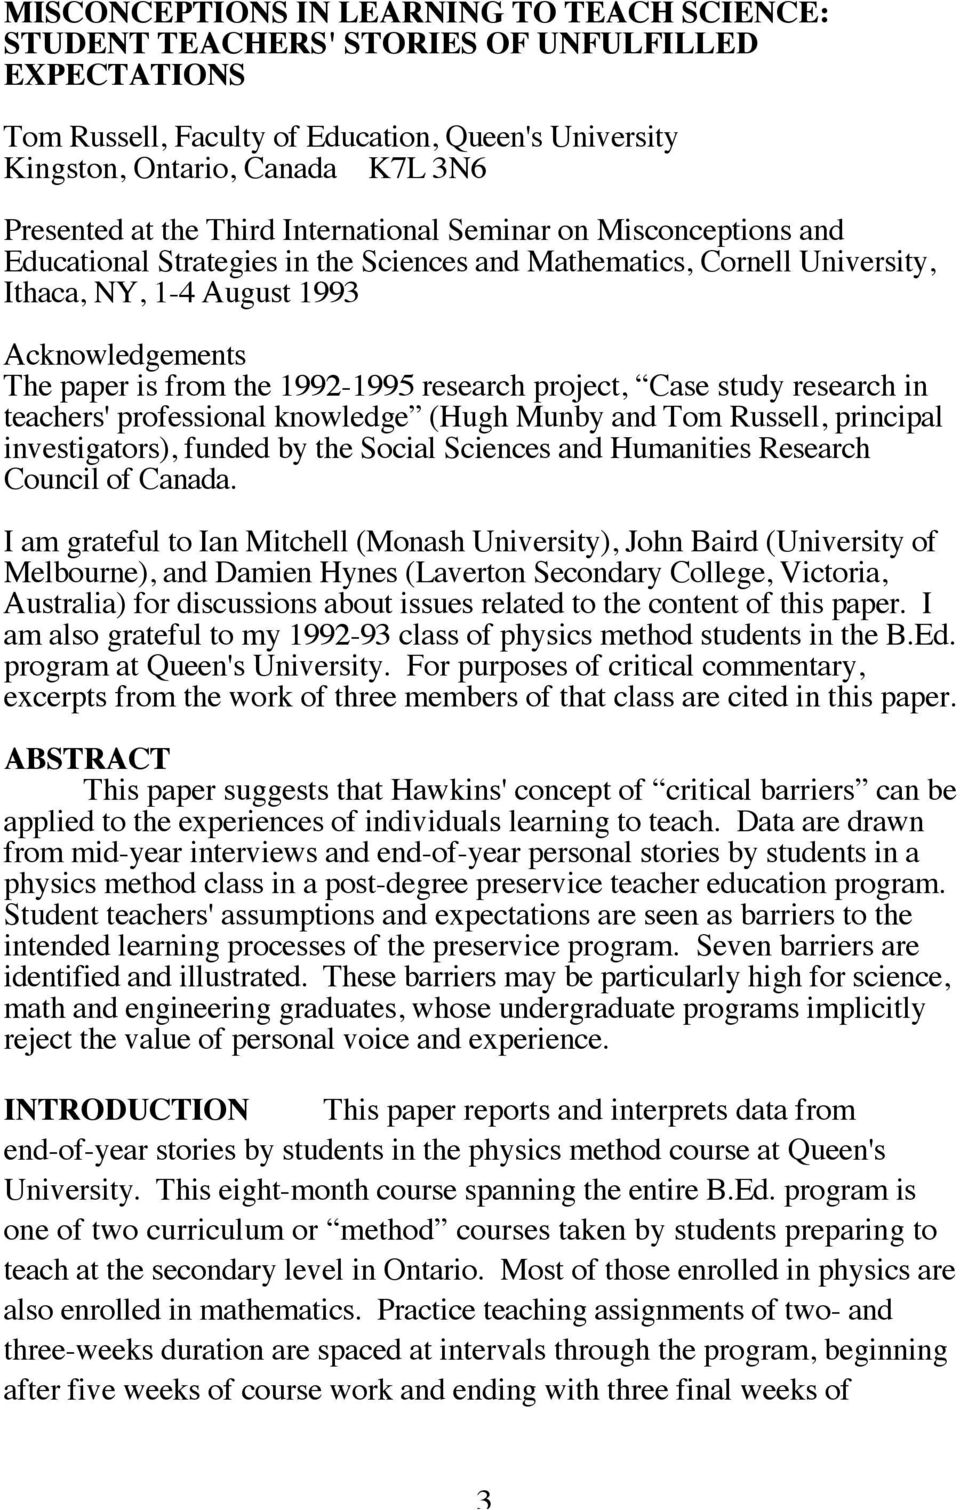 1992-1995 research project, Case study research in teachers' professional knowledge (Hugh Munby and Tom Russell, principal investigators), funded by the Social Sciences and Humanities Research